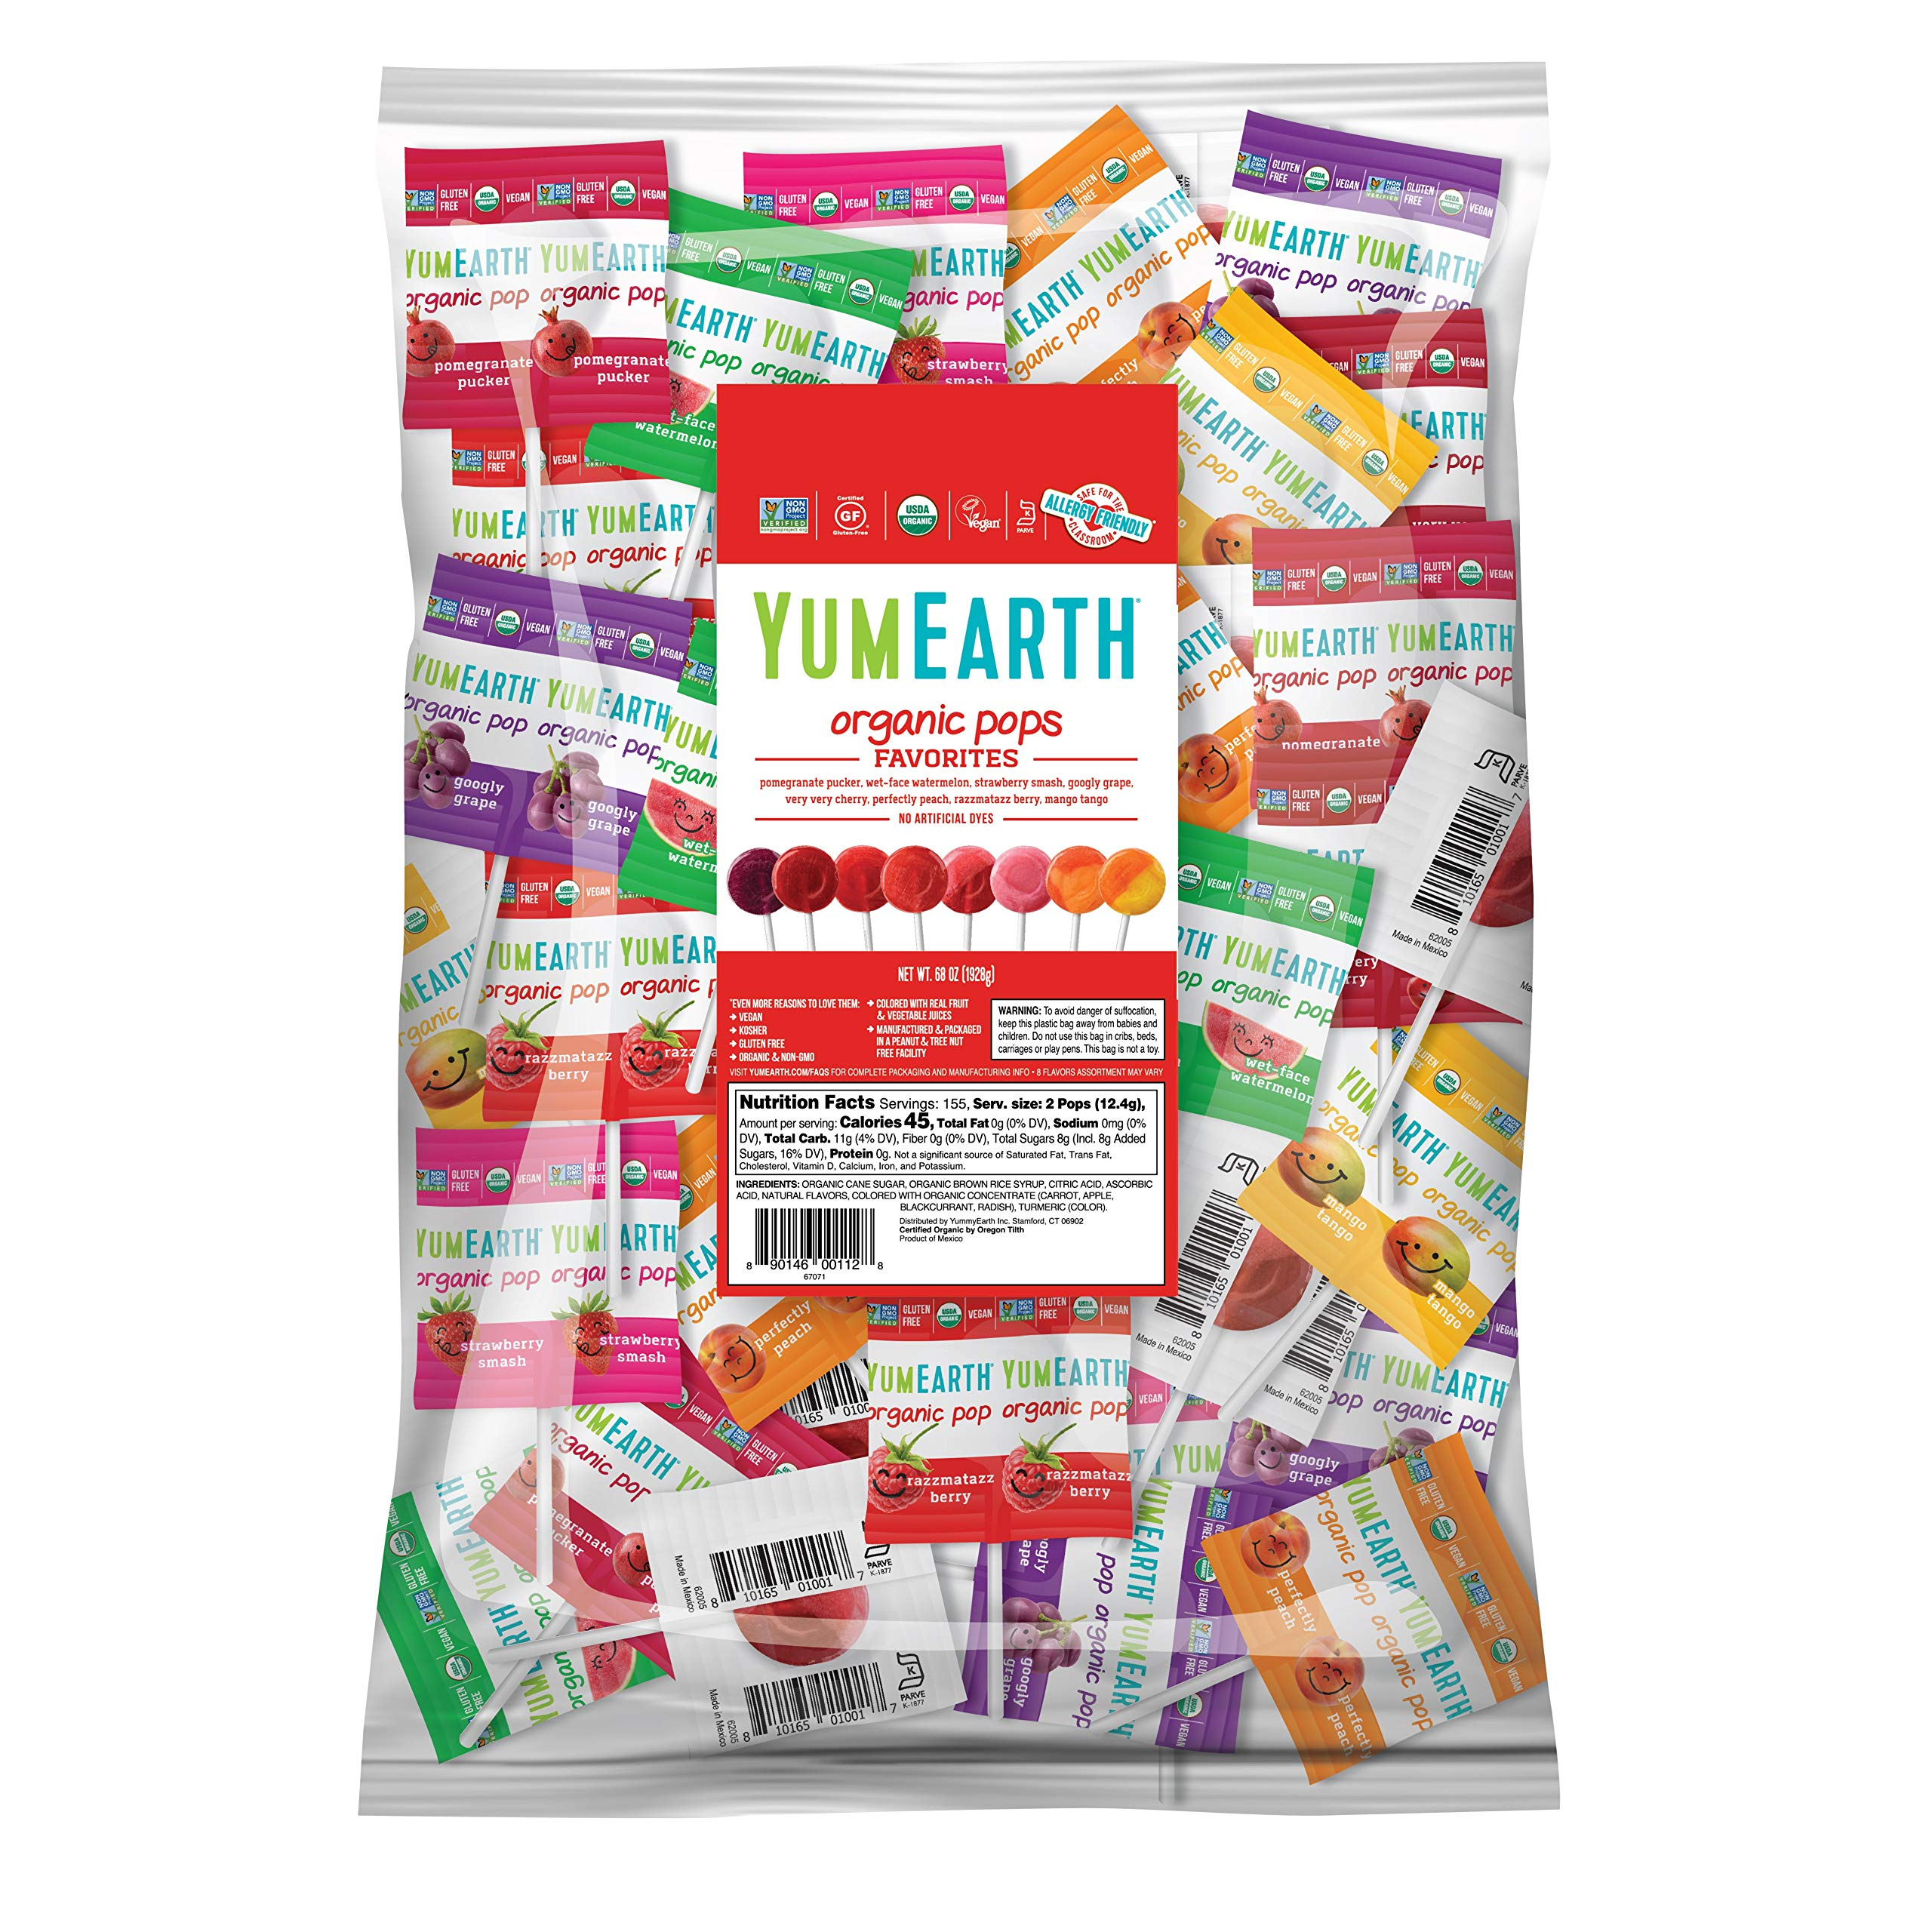 YumEarth Organic Lollipops, Variety Pack, 4.25 lb (pack of 1) - Allergy Friendly, Non GMO, Gluten Free, Vegan (Packaging May Vary)